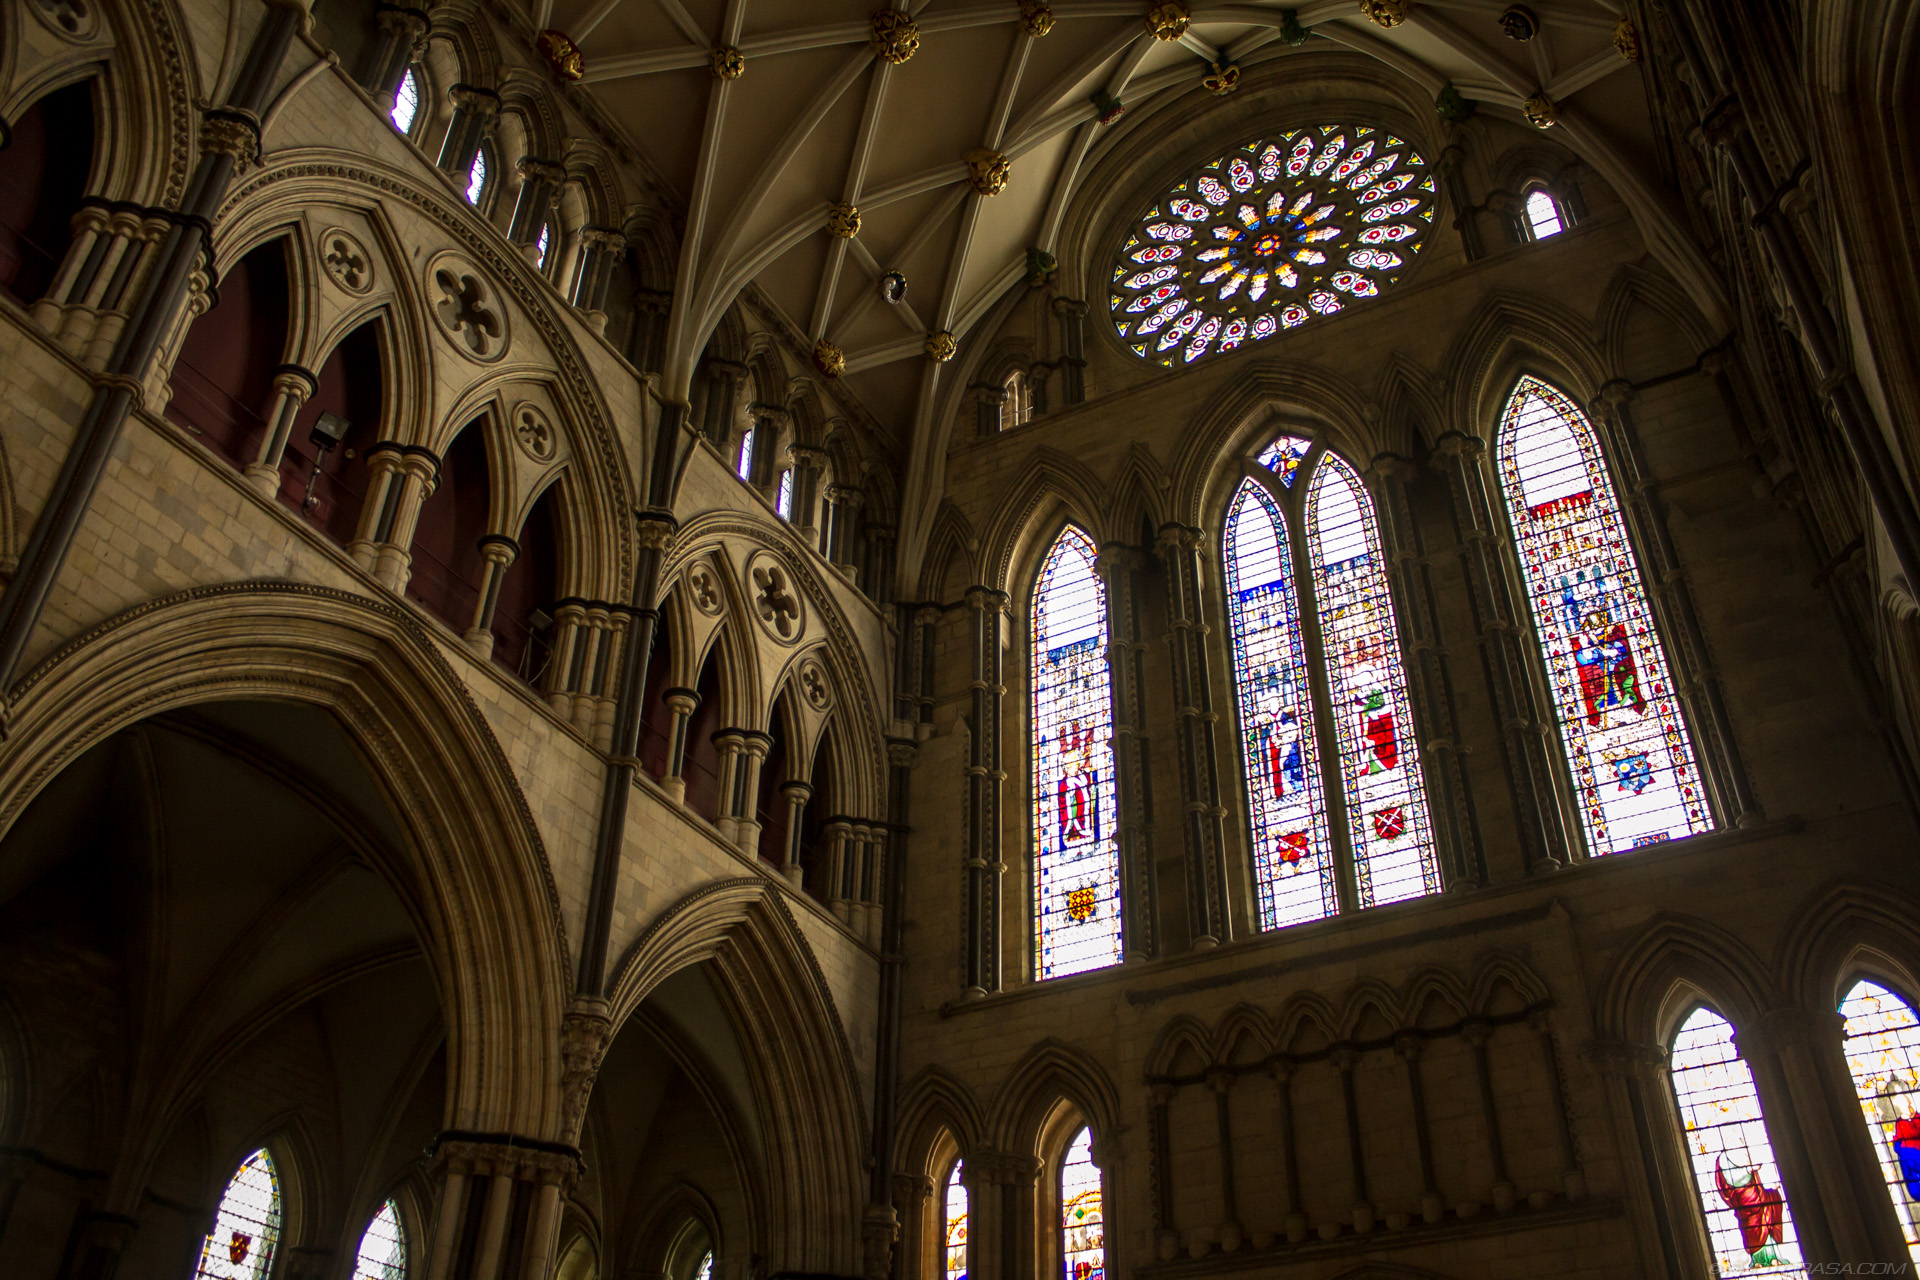 http://photorasa.com/places/yorkminster-cathedral/attachment/north-transept-five-sisters-window/